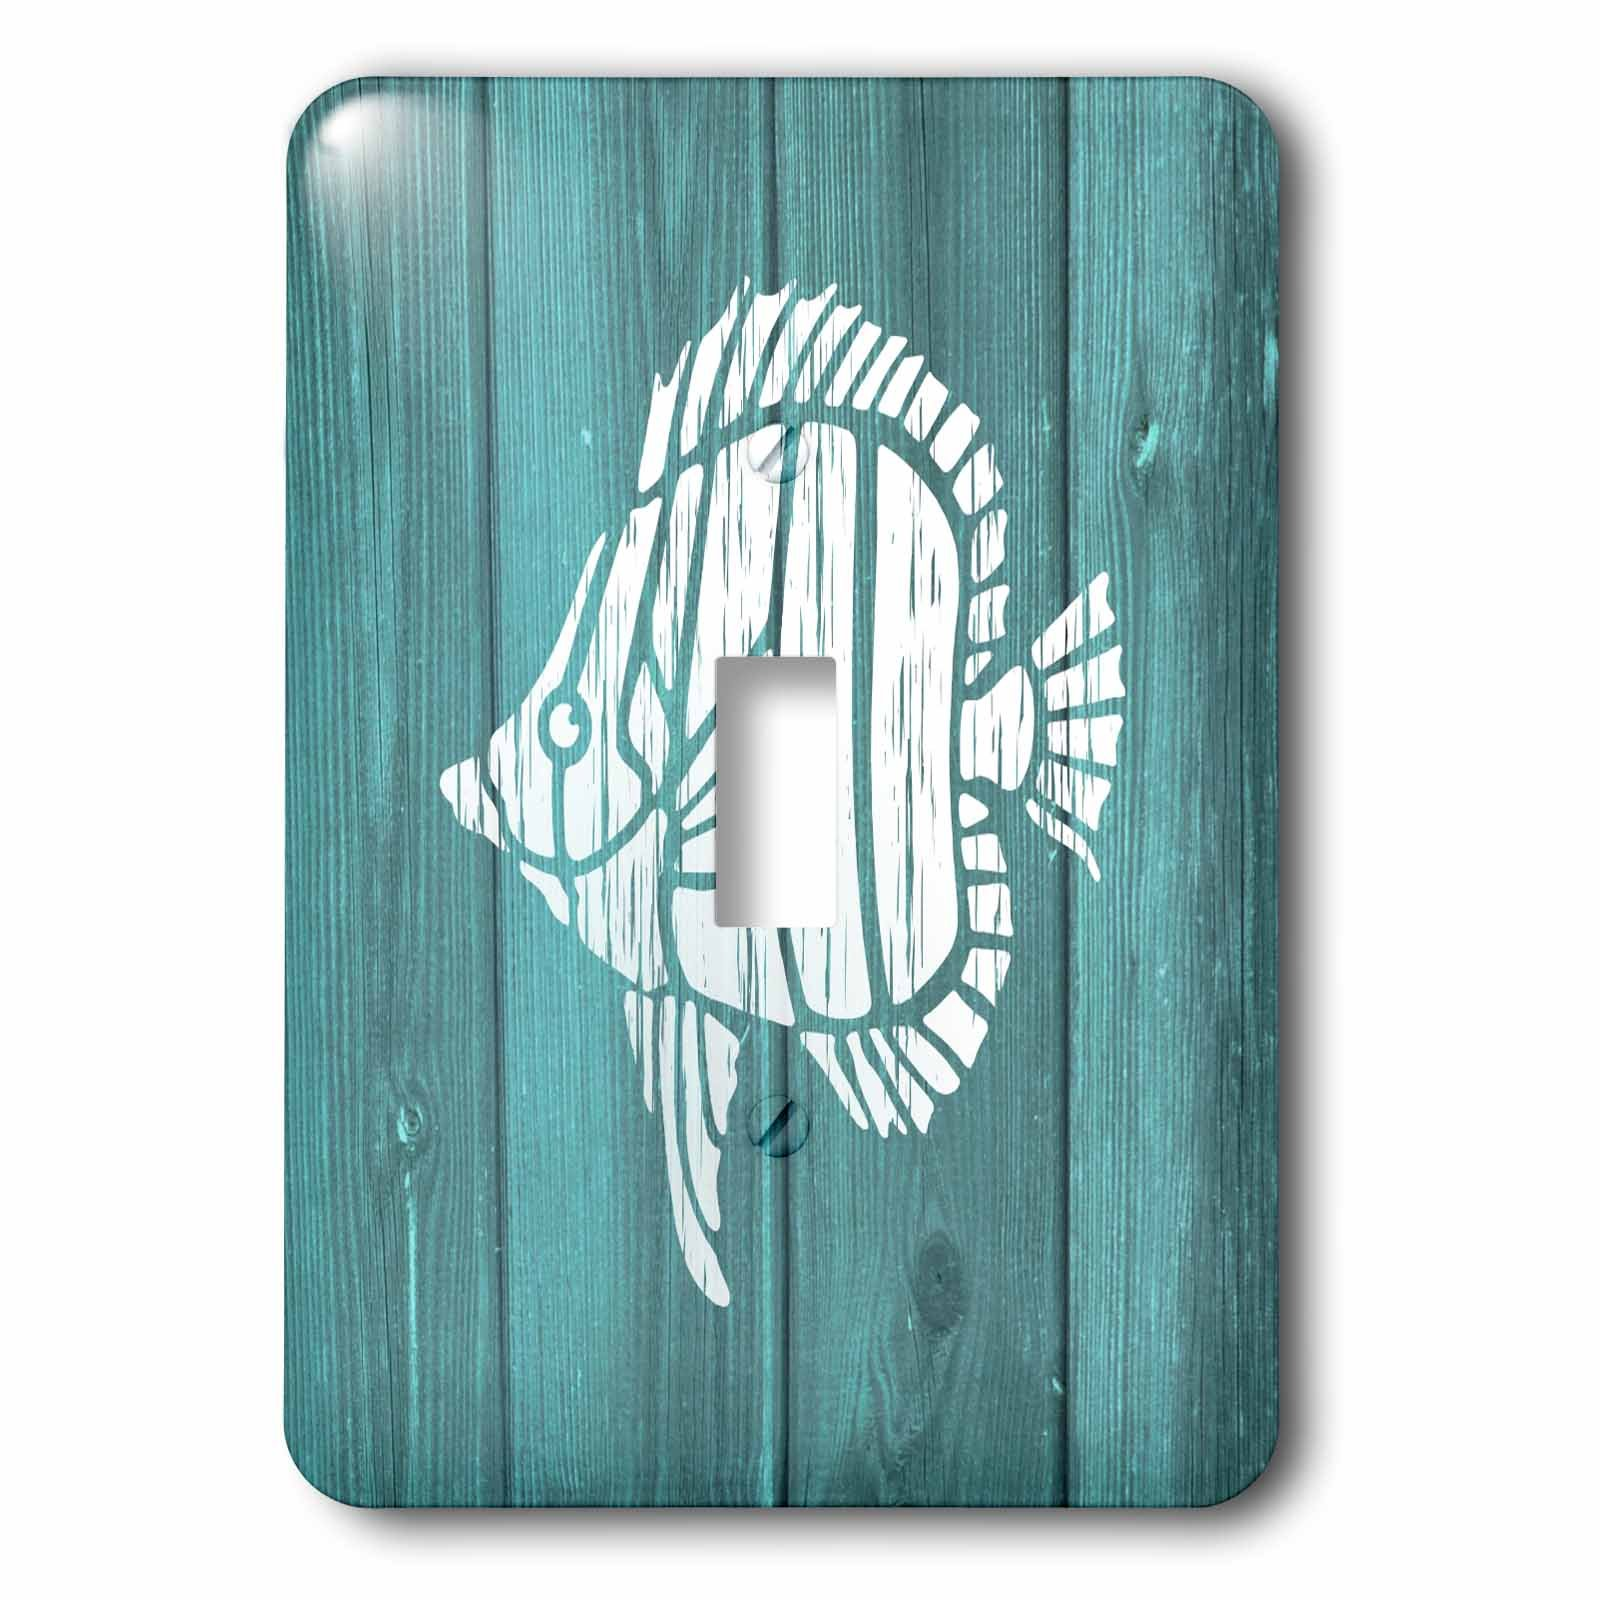 3dRose lsp_220421_1 White Painted Tropical Fish On Teal Background- Not Real Wood - Single Toggle Switch